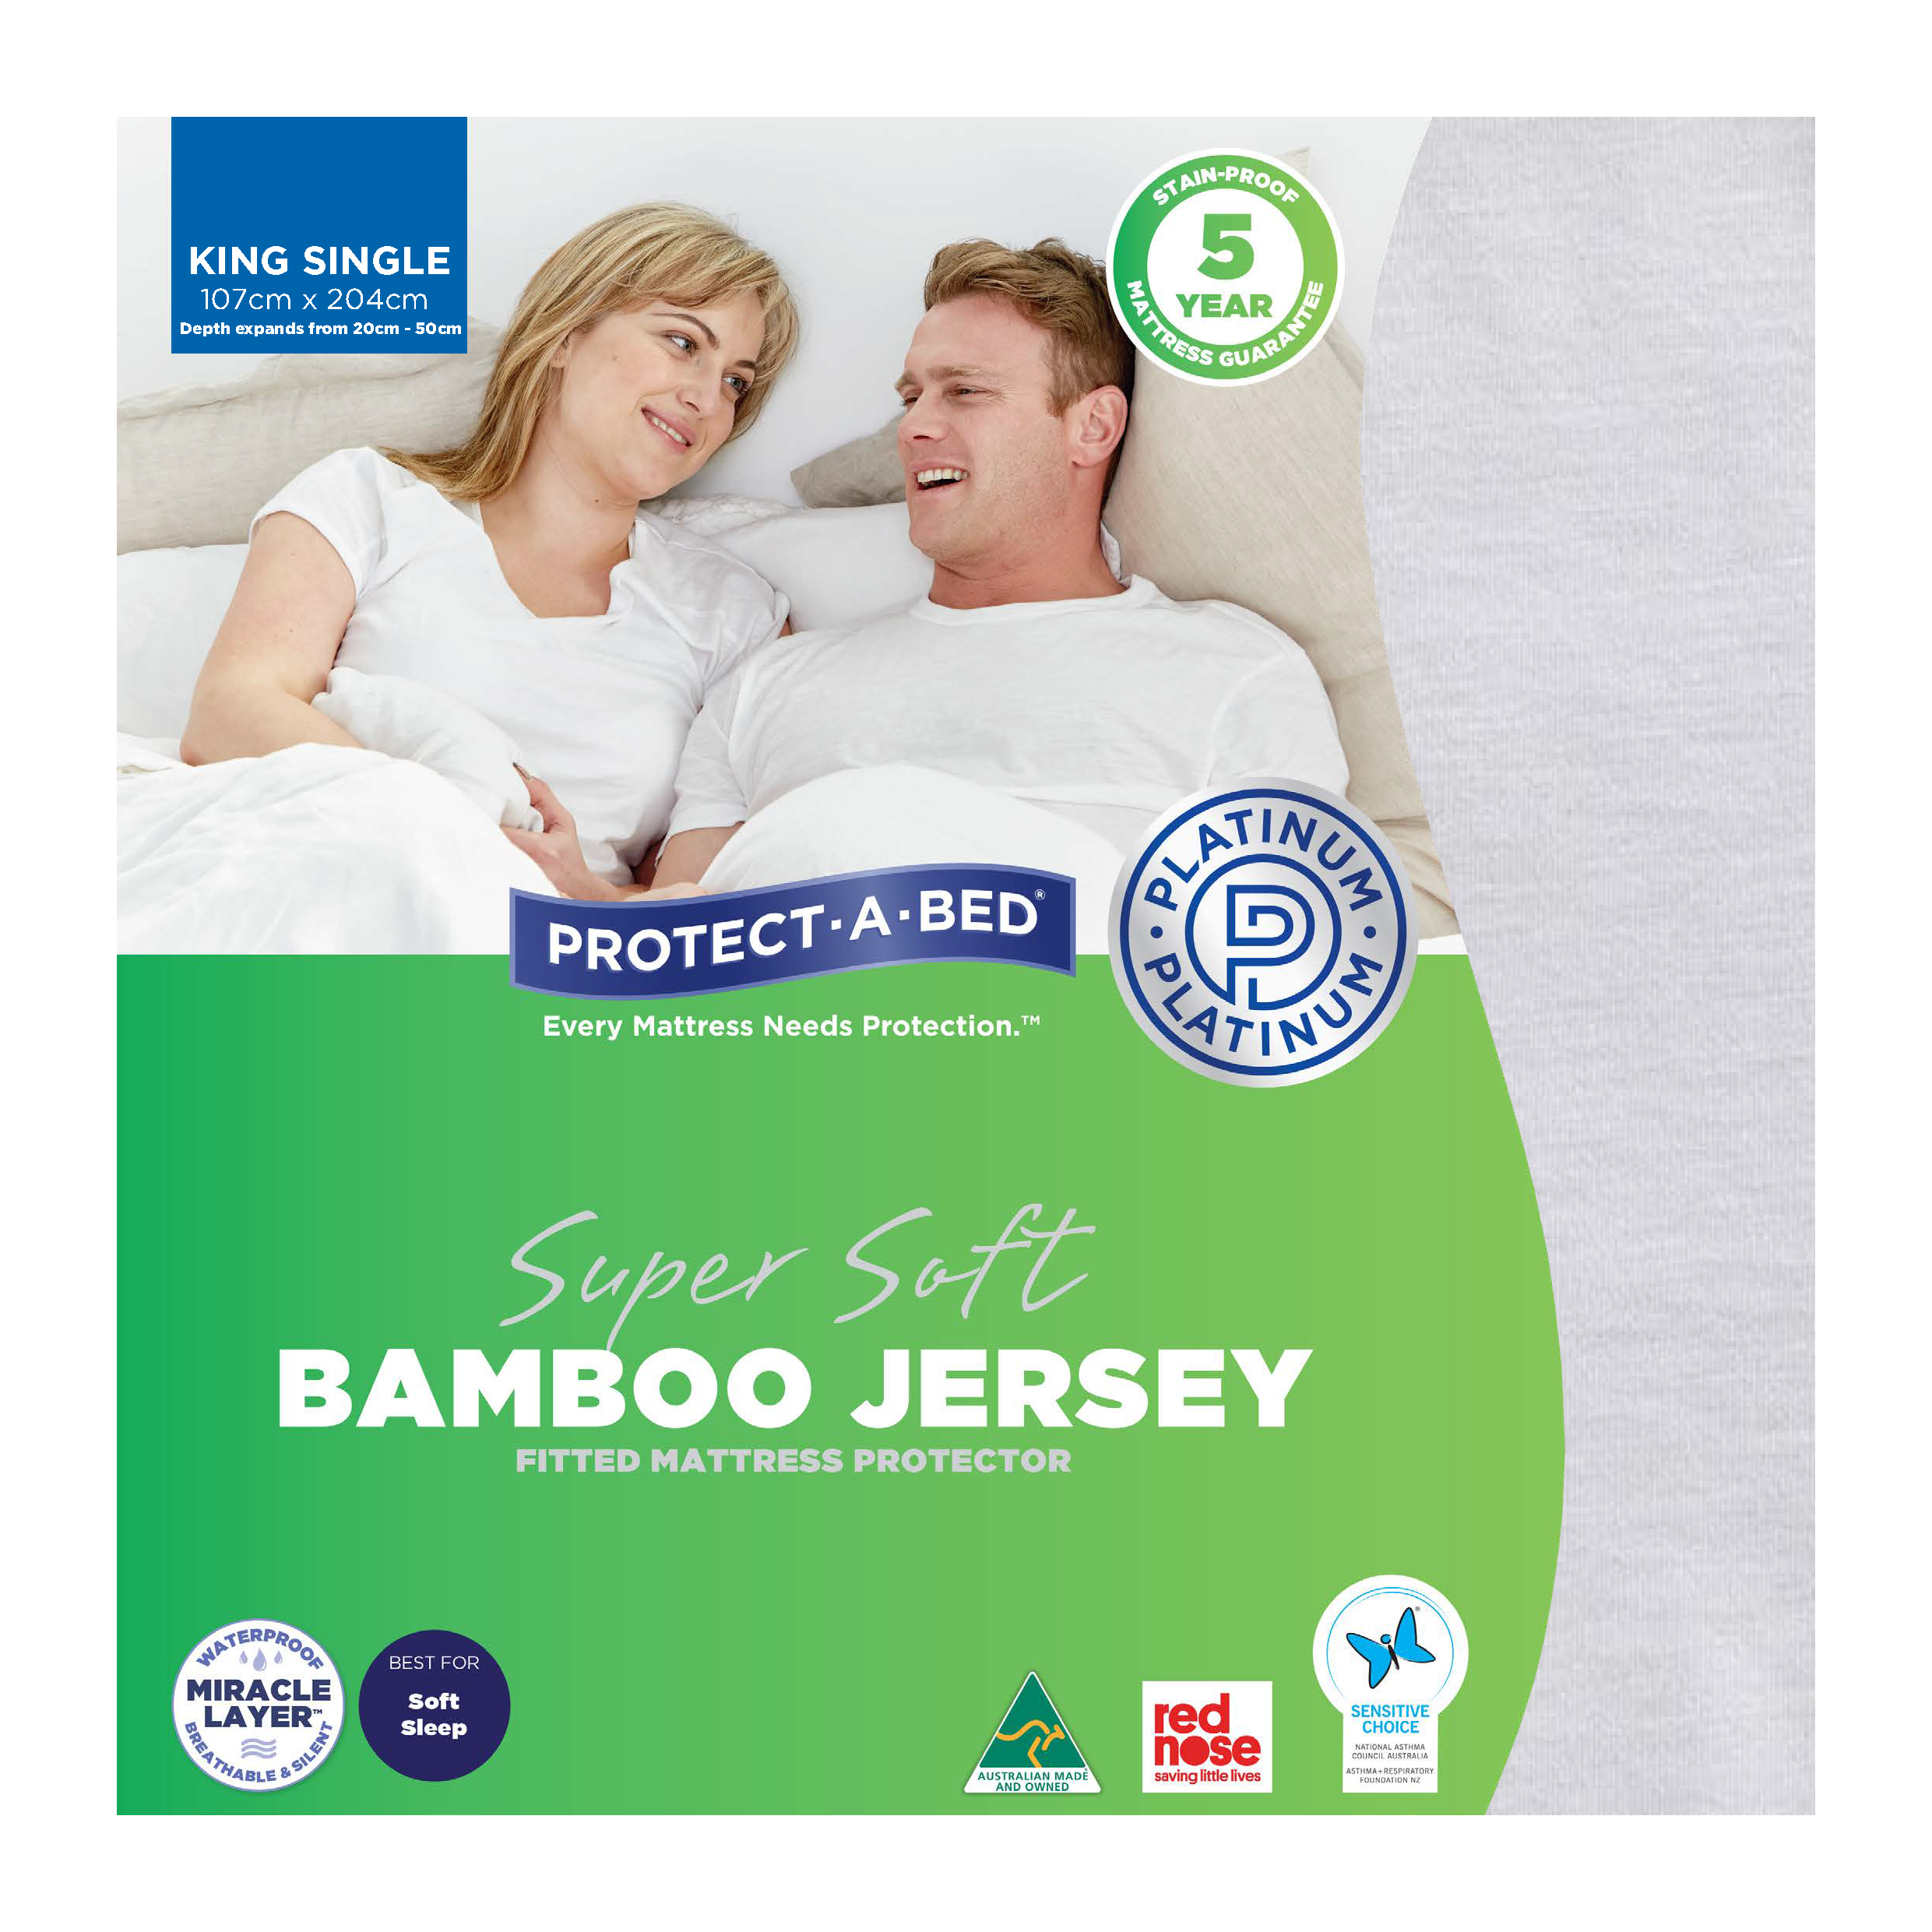 Protect-A-Bed Bamboo Jersey – King Single Mattress Protector